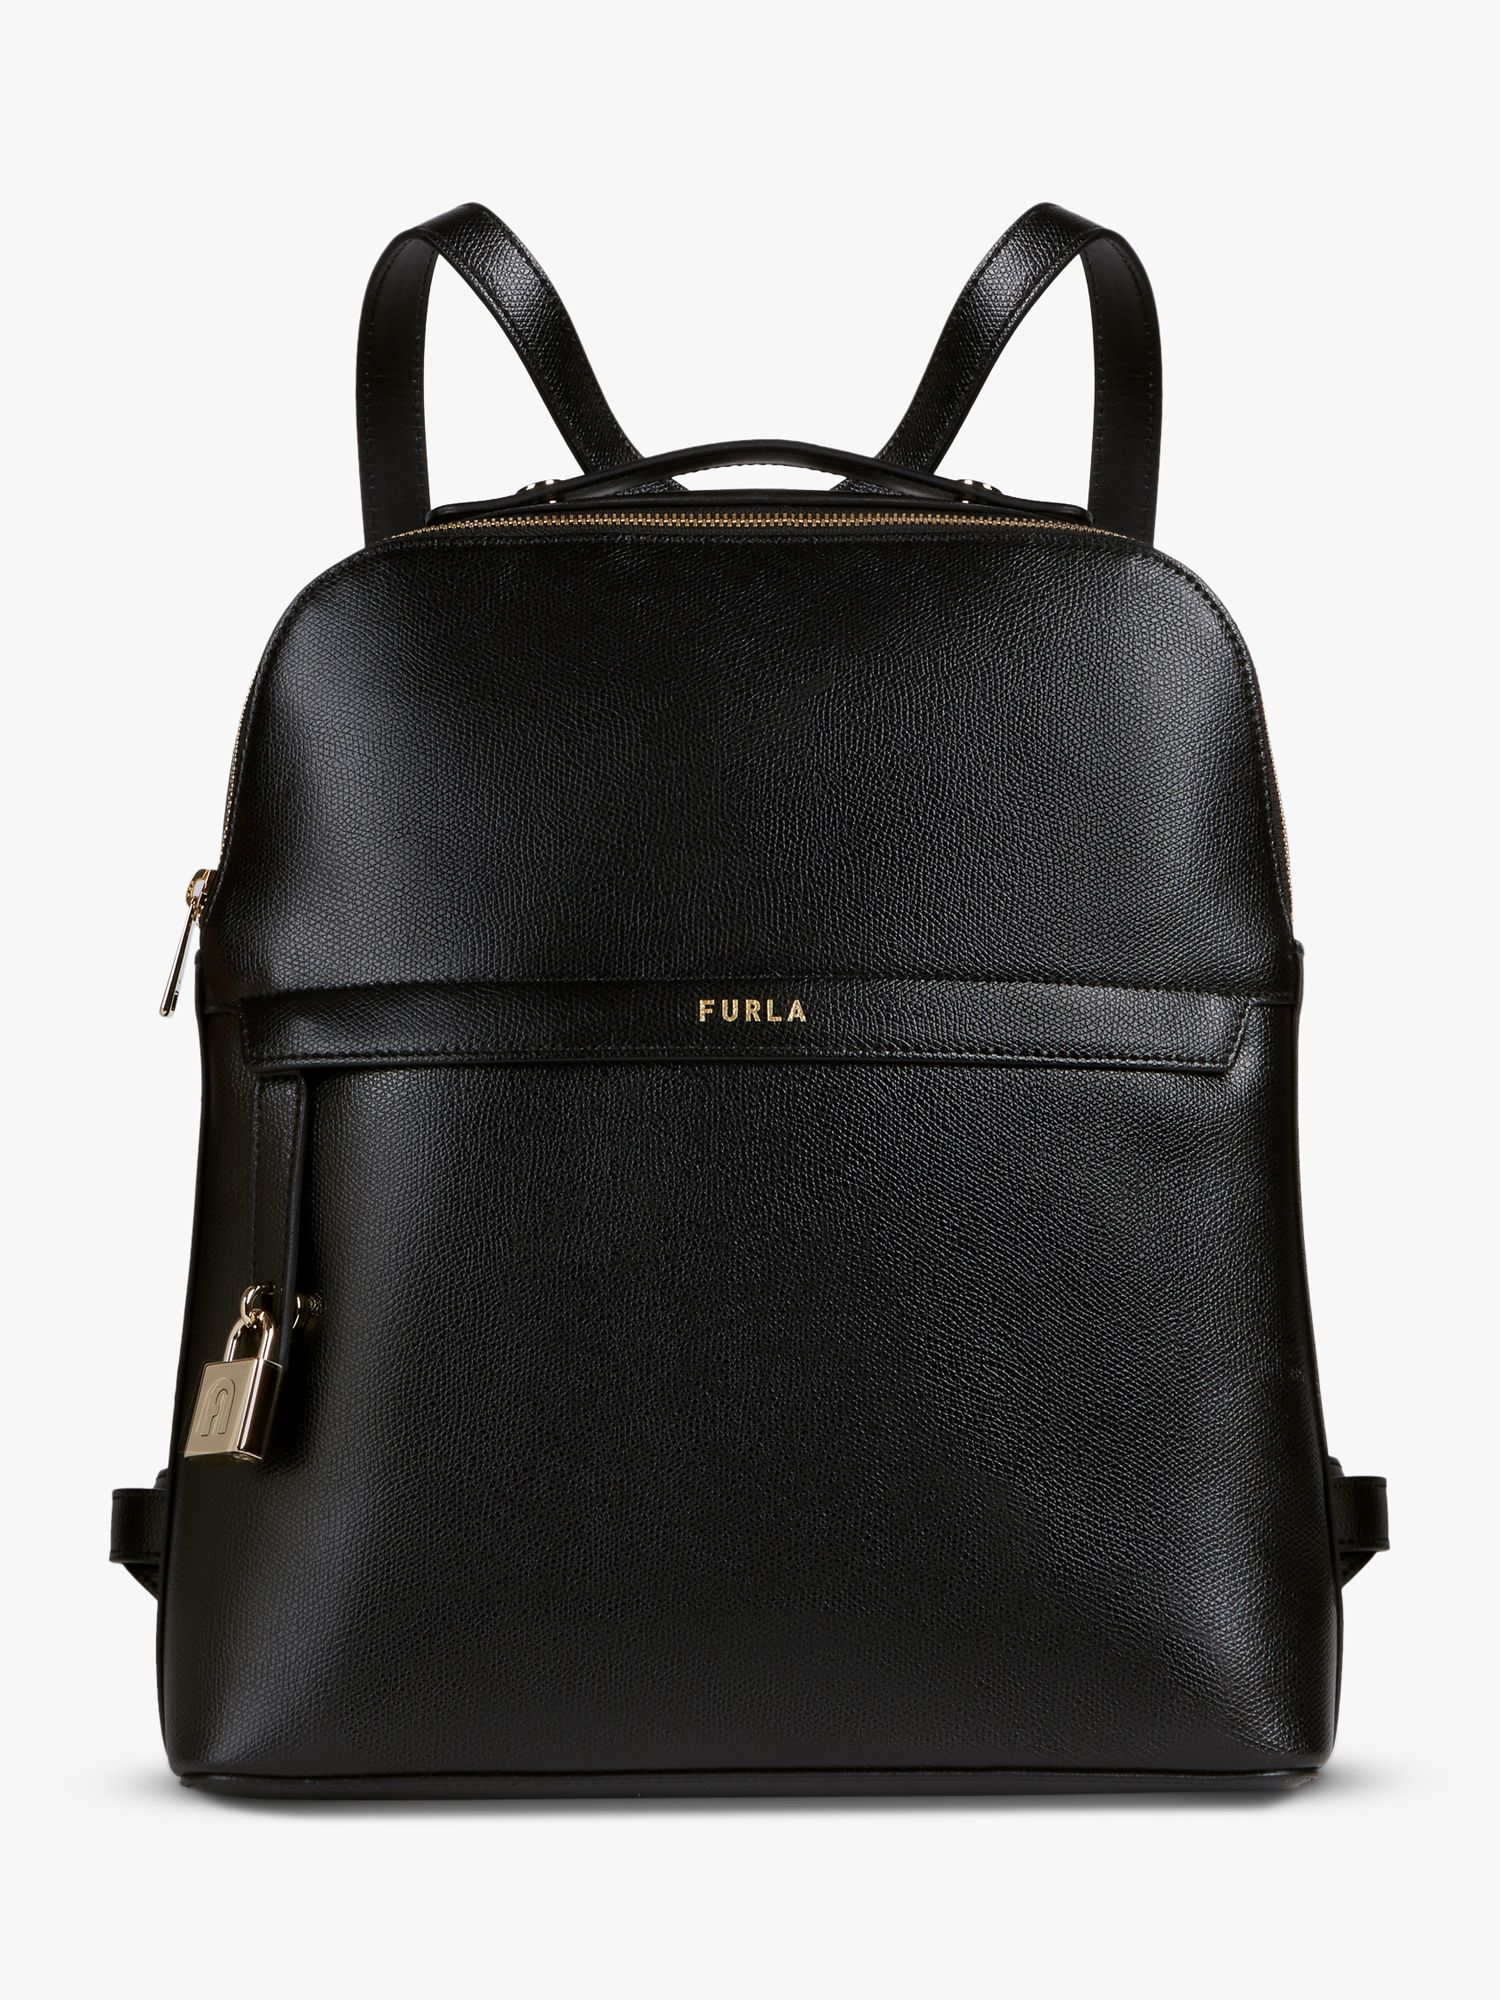 Furla Furla Piper Leather Backpack, Nero Black